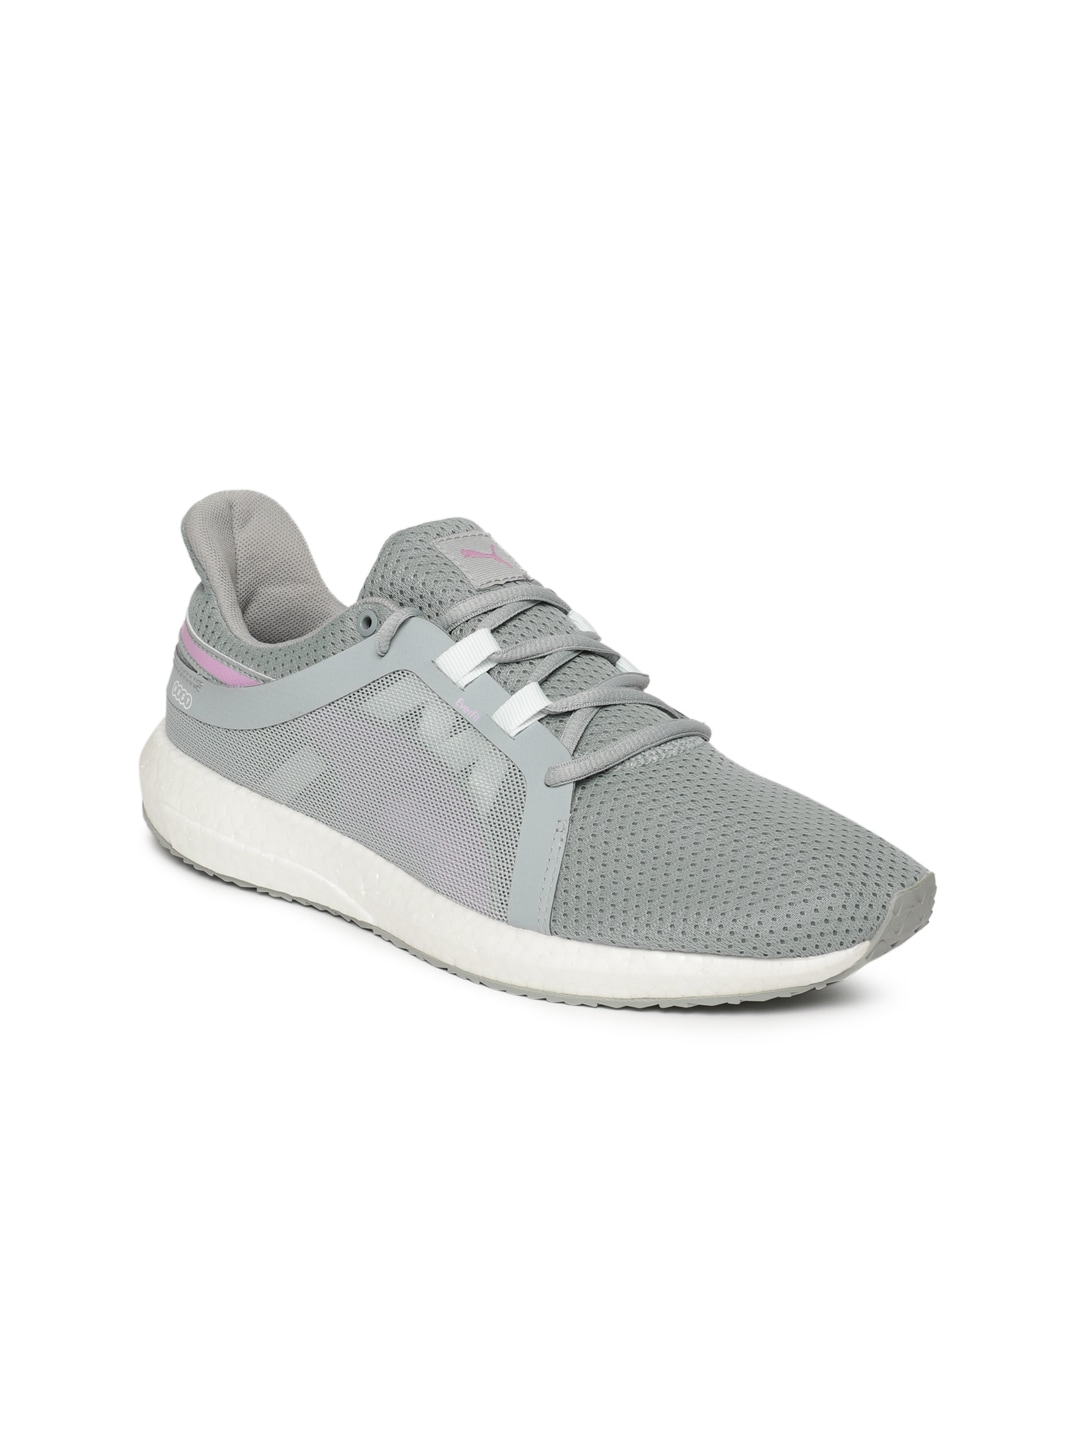 a58d2f248 Sports Shoes for Women - Buy Women Sports Shoes Online